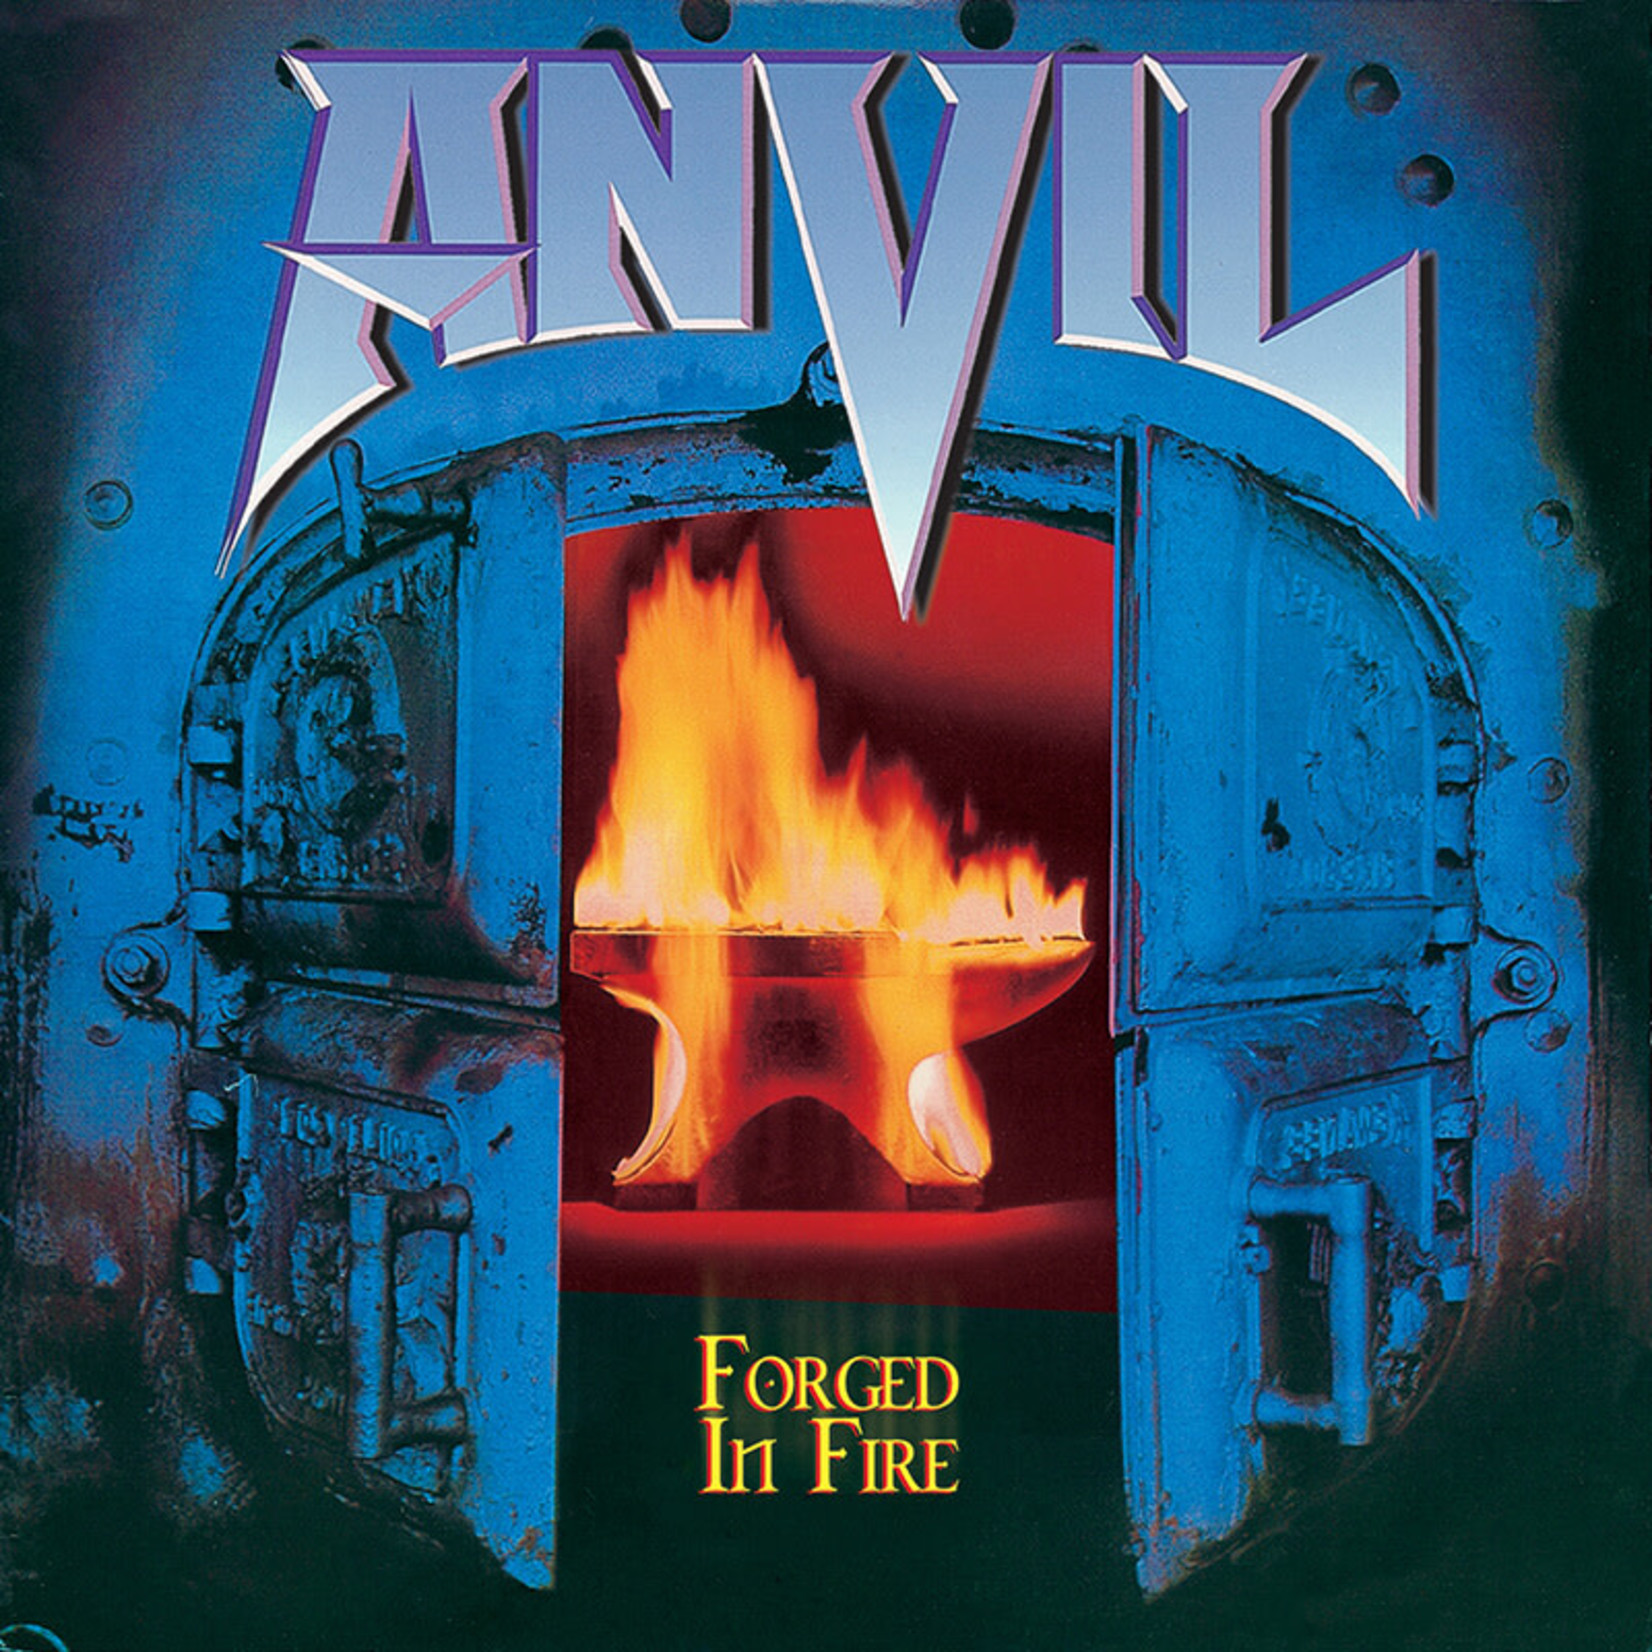 ANVIL FORGED IN FIRE (VINYL)